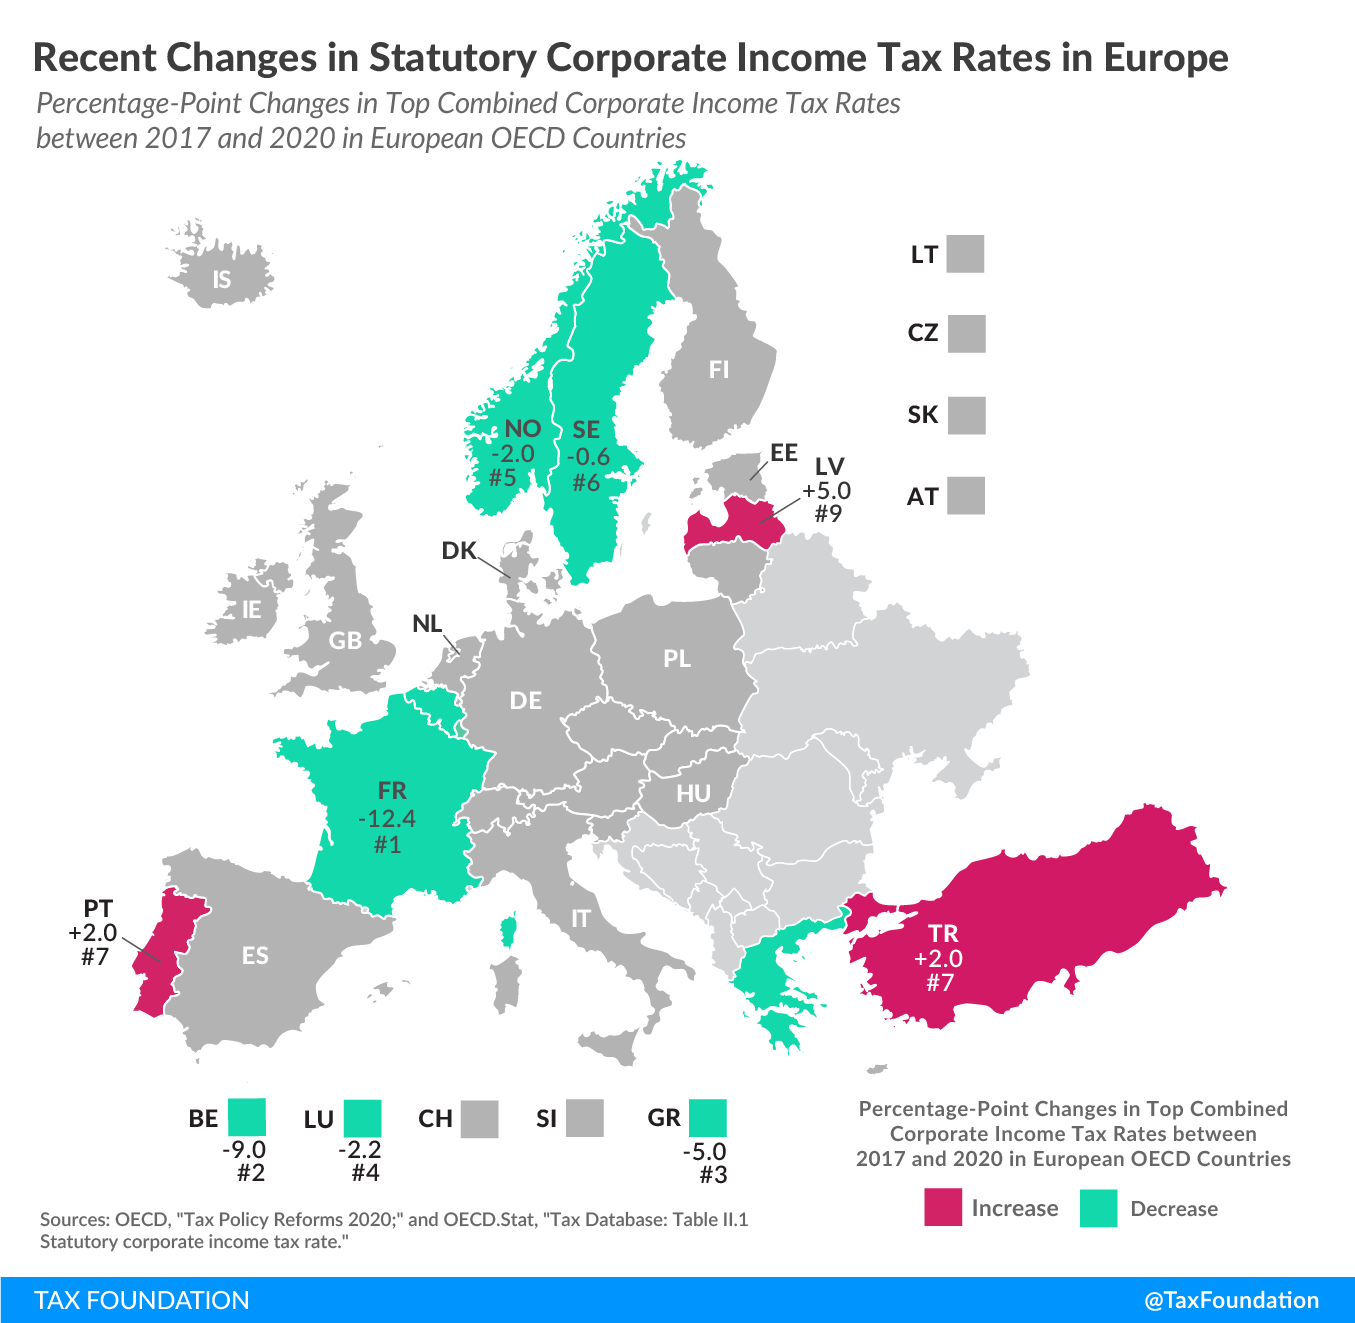 recent-changes-in-statutory-corporate-income-tax-rates-in-europe-2020-corporate-tax-trends-01.png